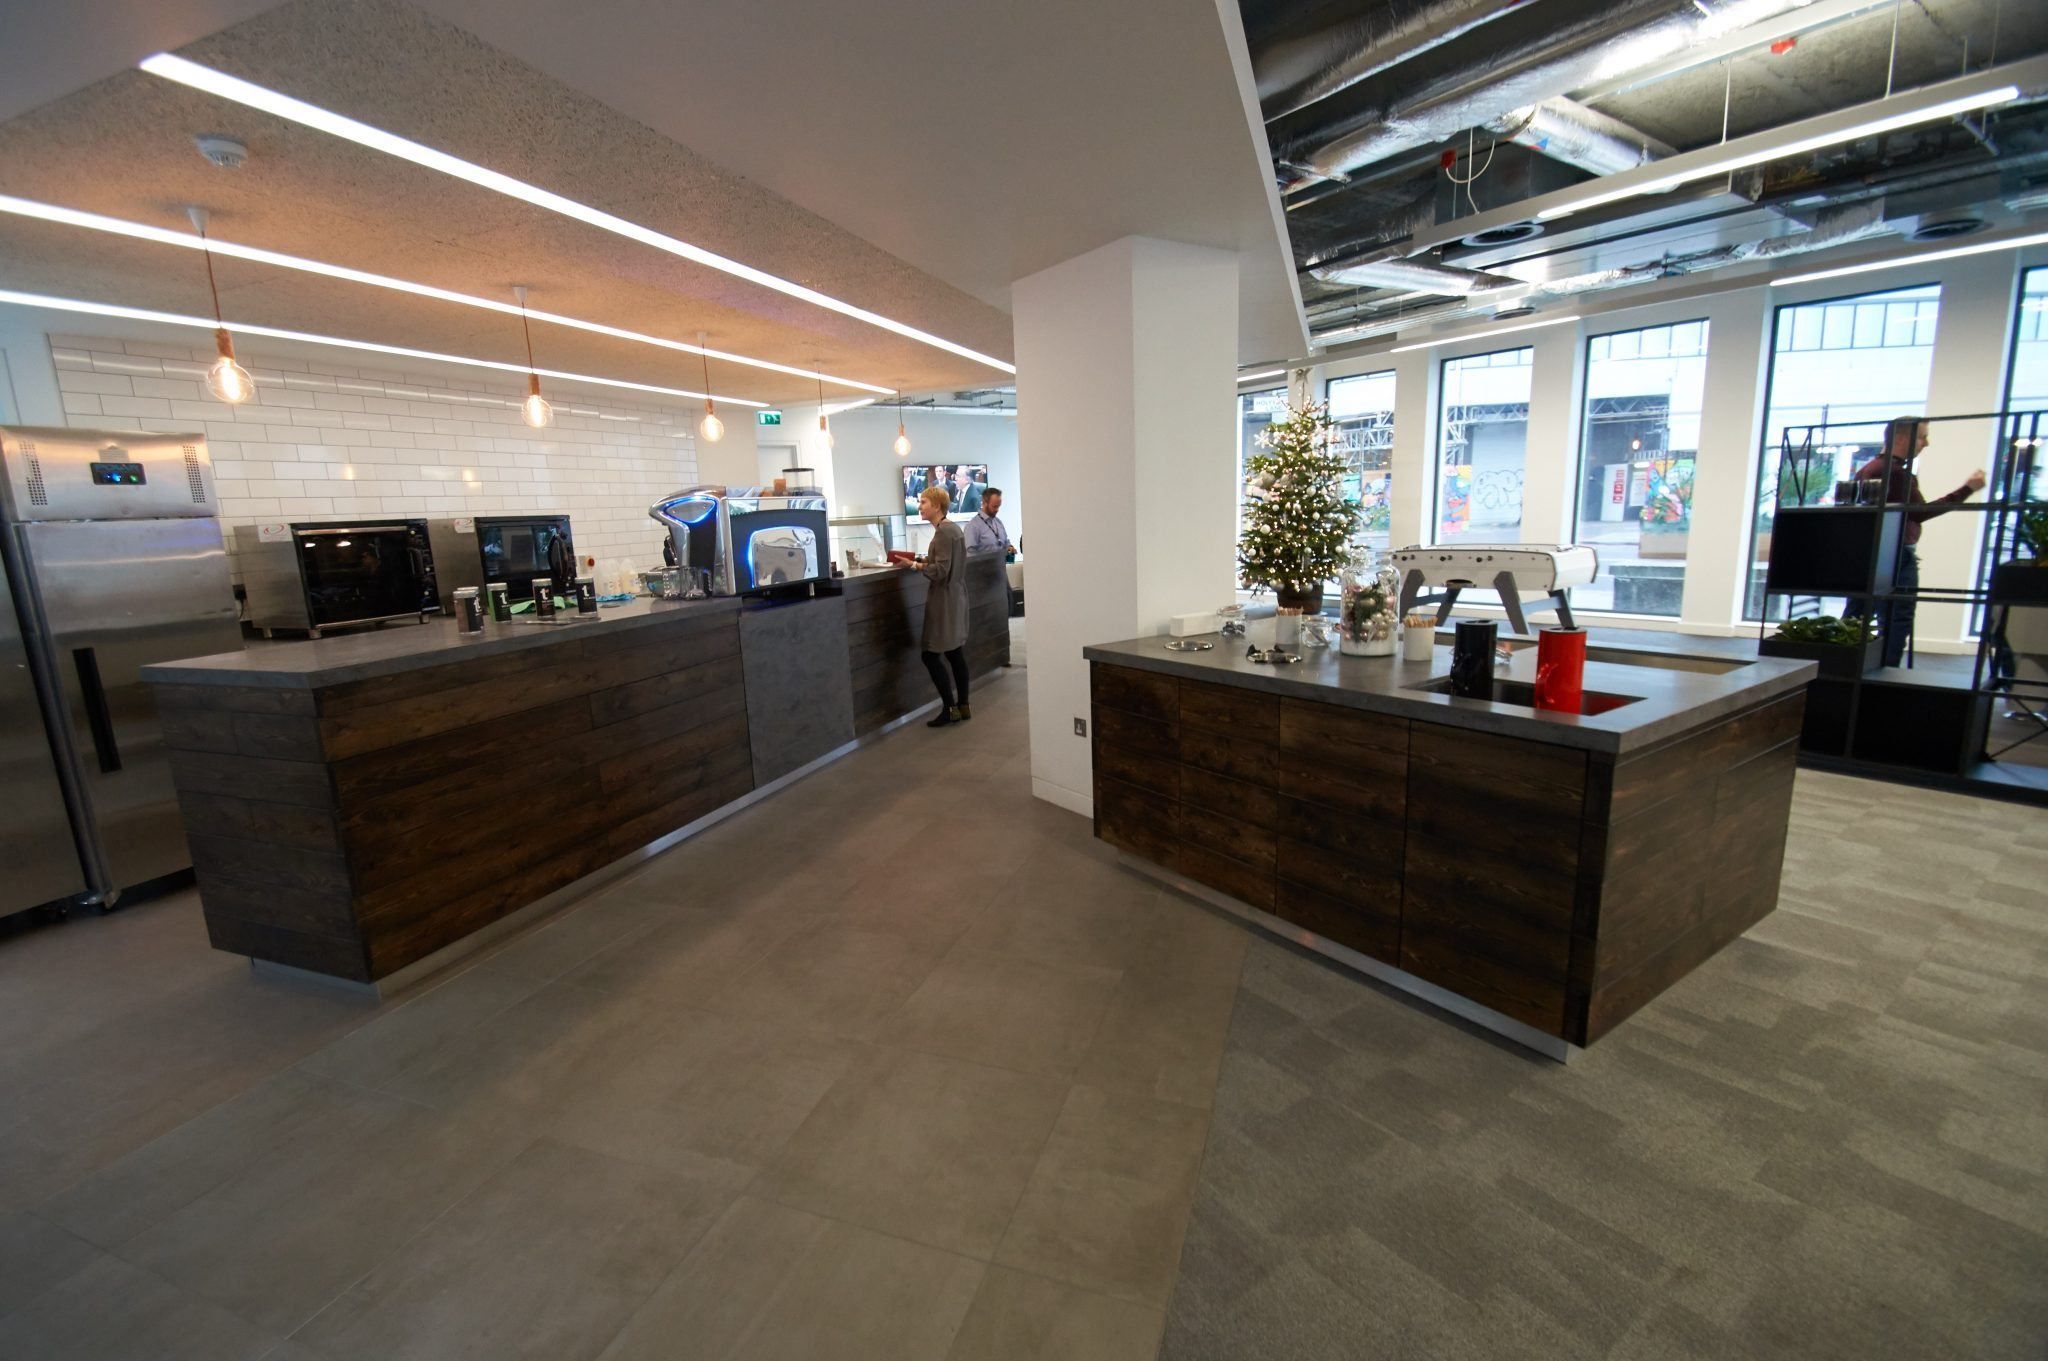 Bespoke Counter at Colt Technology Services